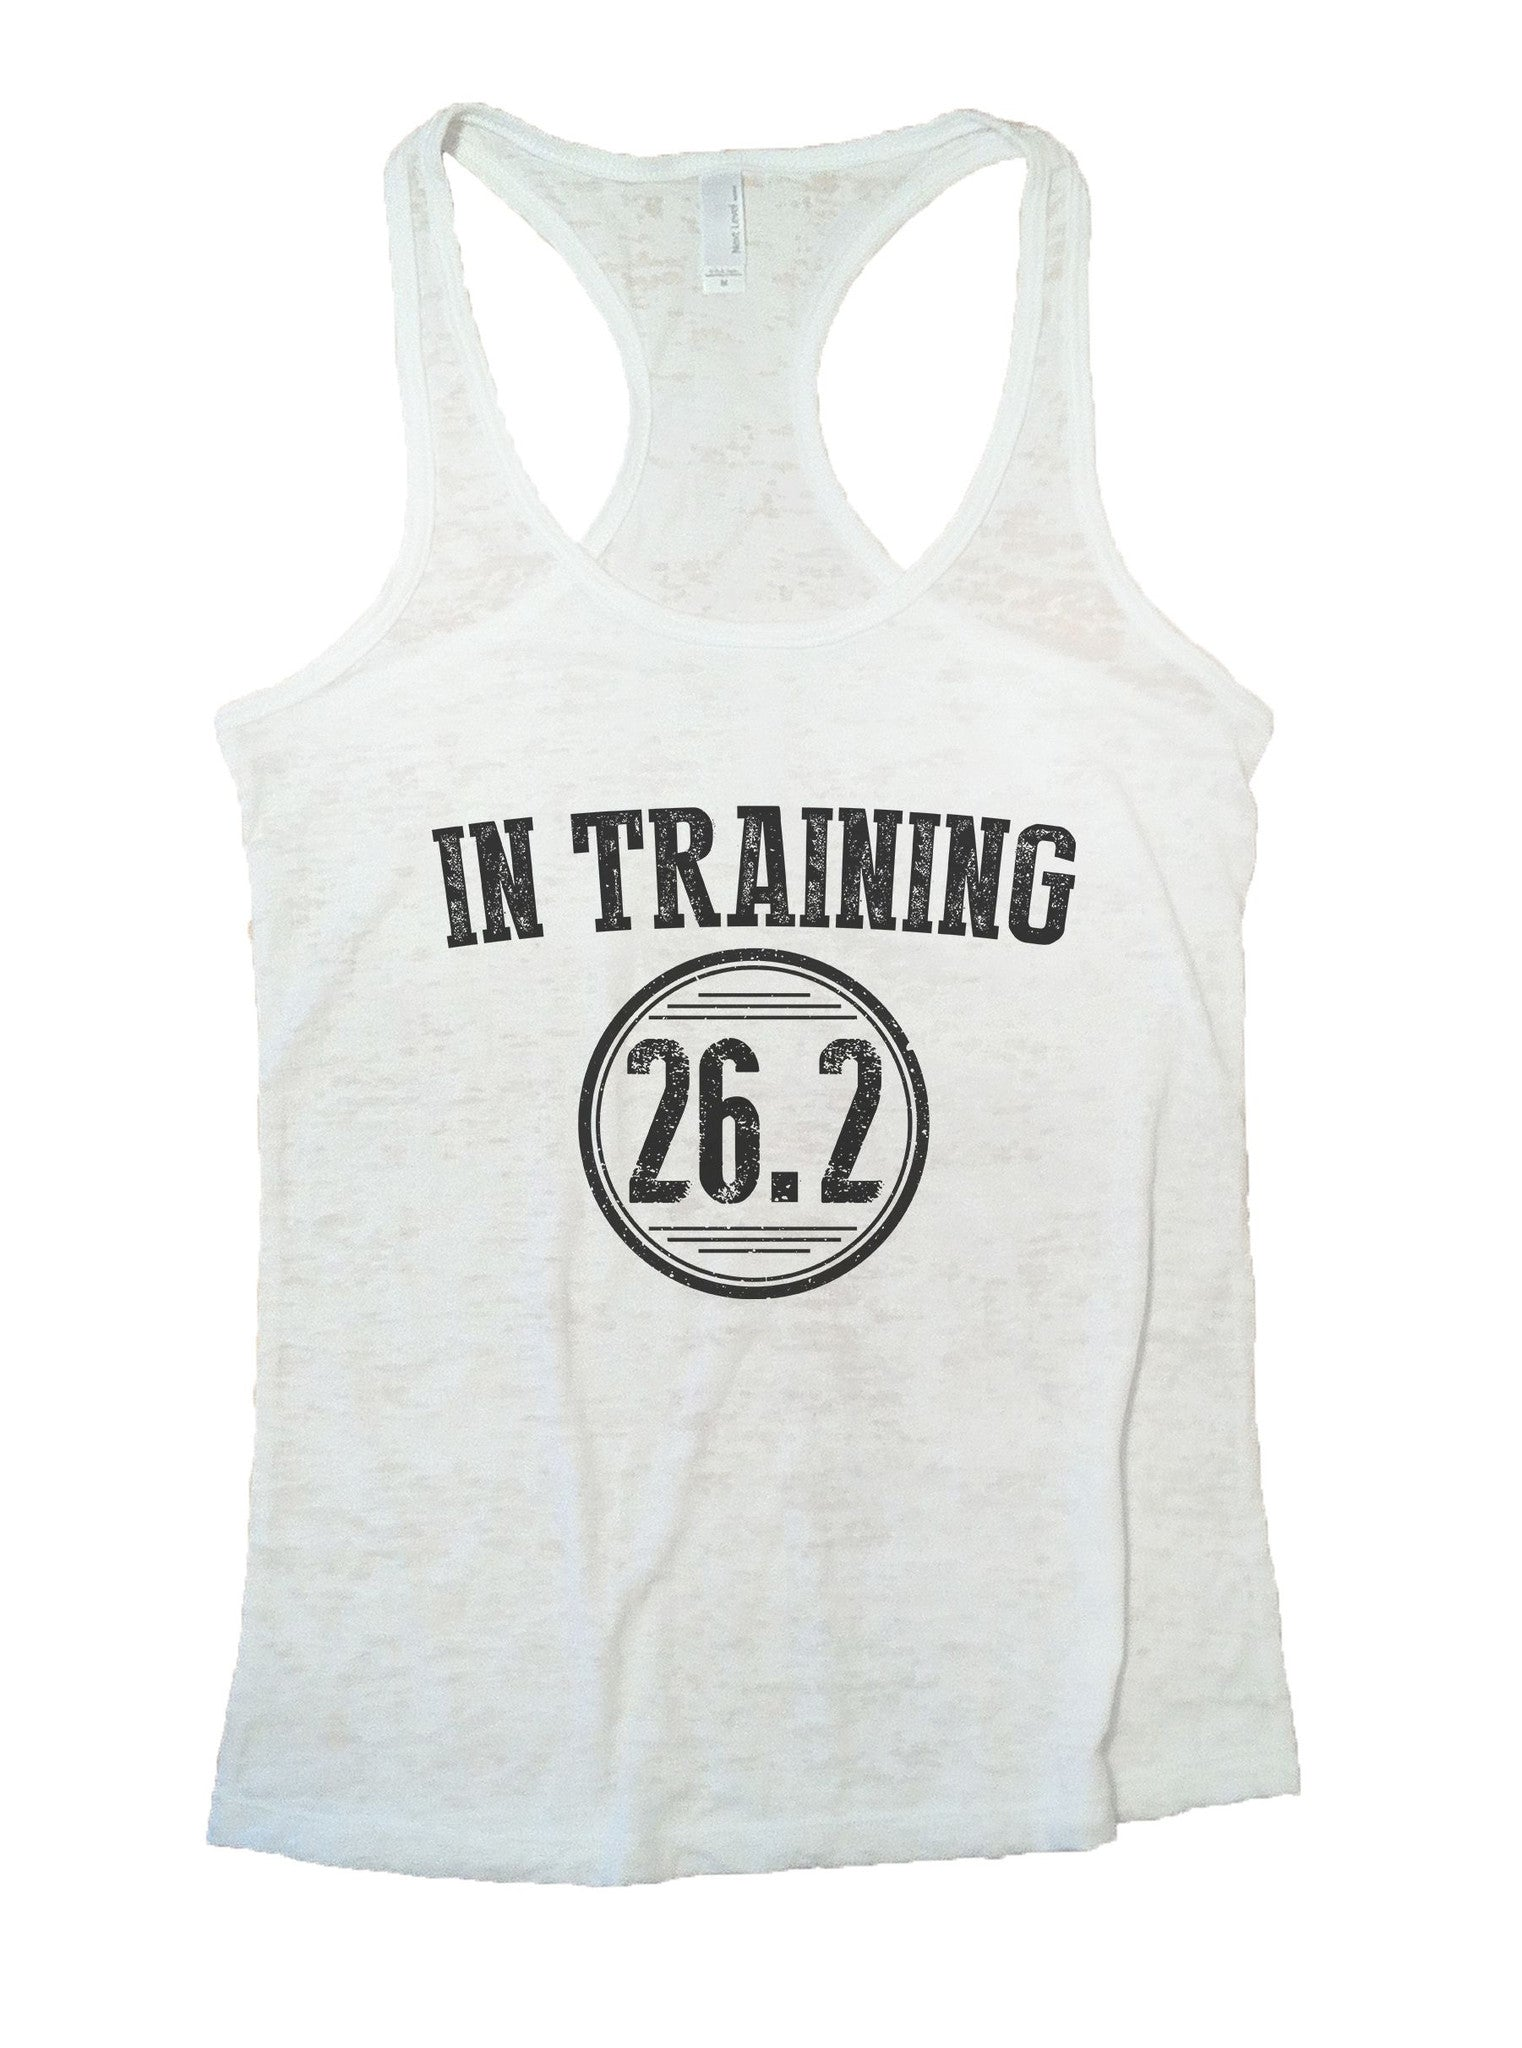 In Training 26.2 Burnout Tank Top By BurnoutTankTops.com - 1037 - Funny Shirts Tank Tops Burnouts and Triblends  - 6